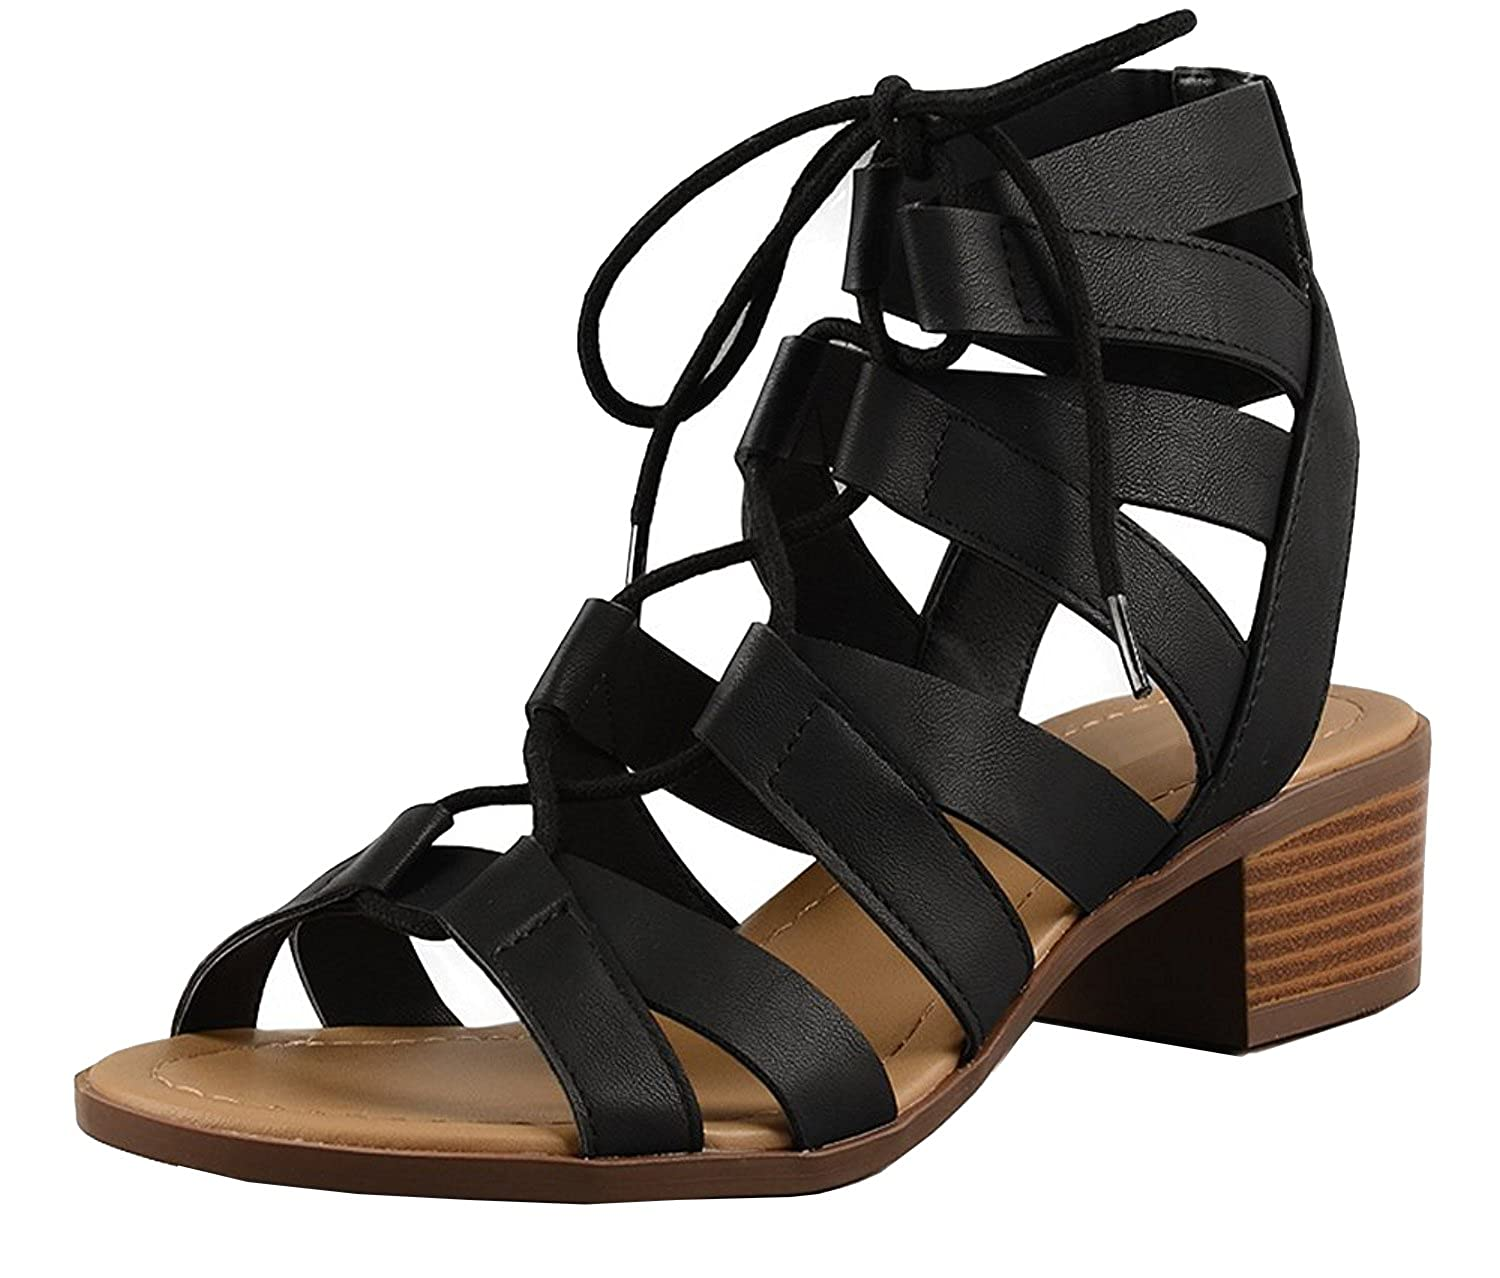 0ab6ade38f8 Image Cambridge Select Women s Gladiator Caged Cutout Open Toe Chunky  Stacked Block Lace-up Mid